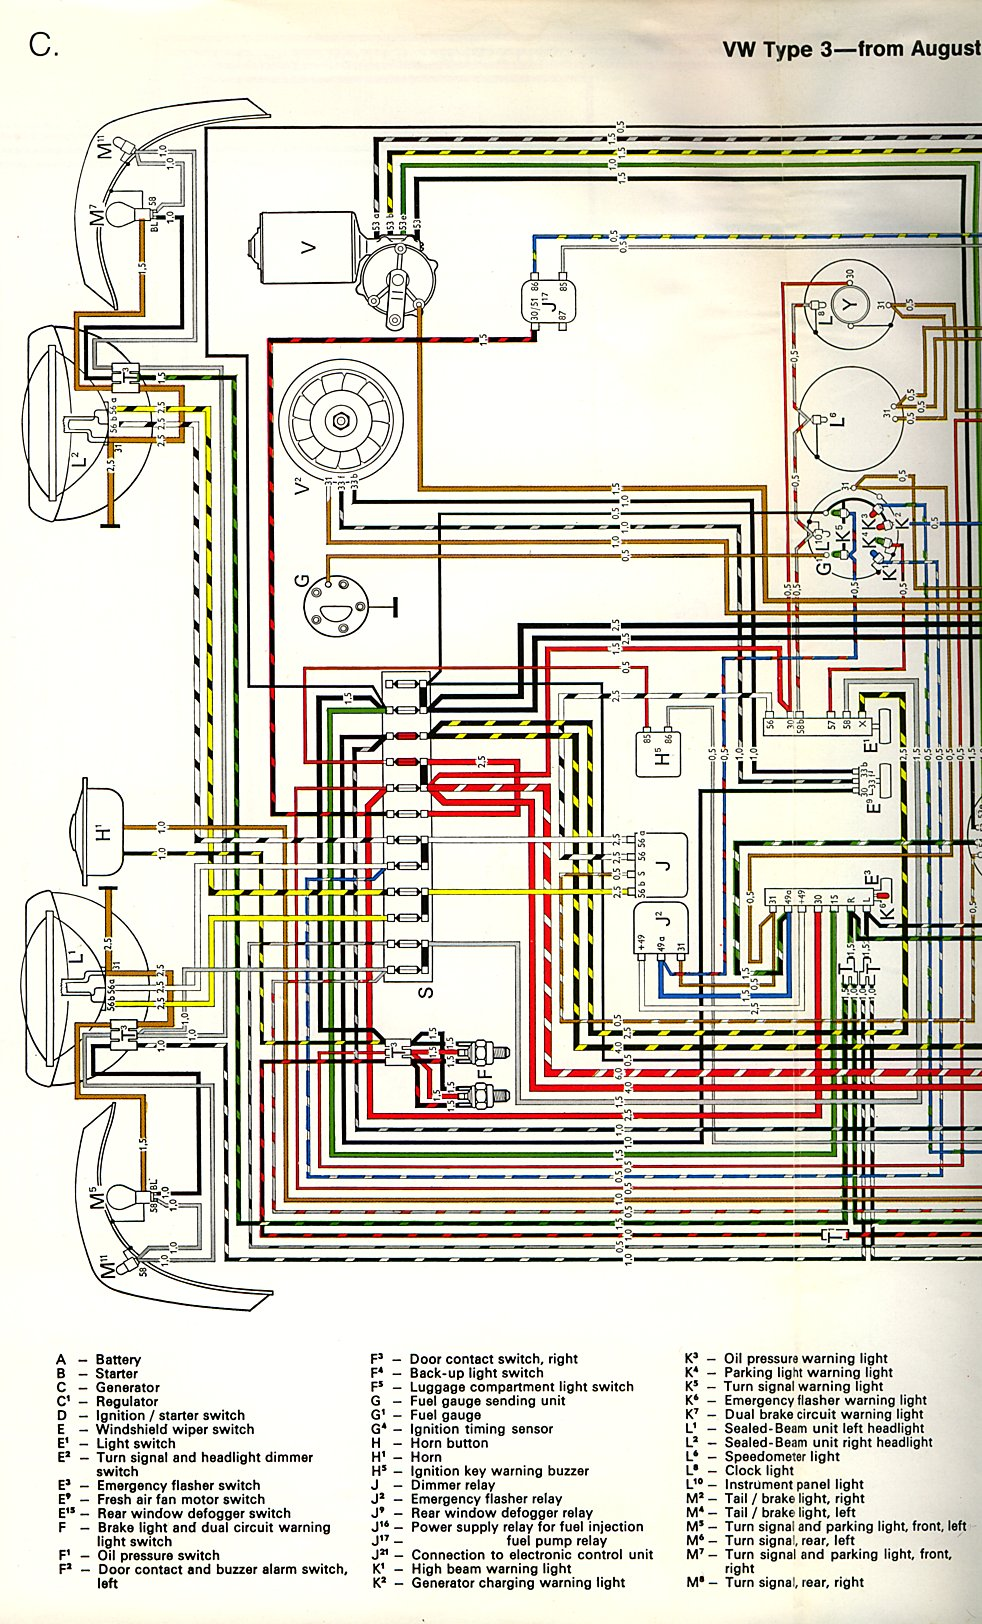 type3_72a thesamba com type 3 wiring diagrams volkswagen wiring diagrams at readyjetset.co